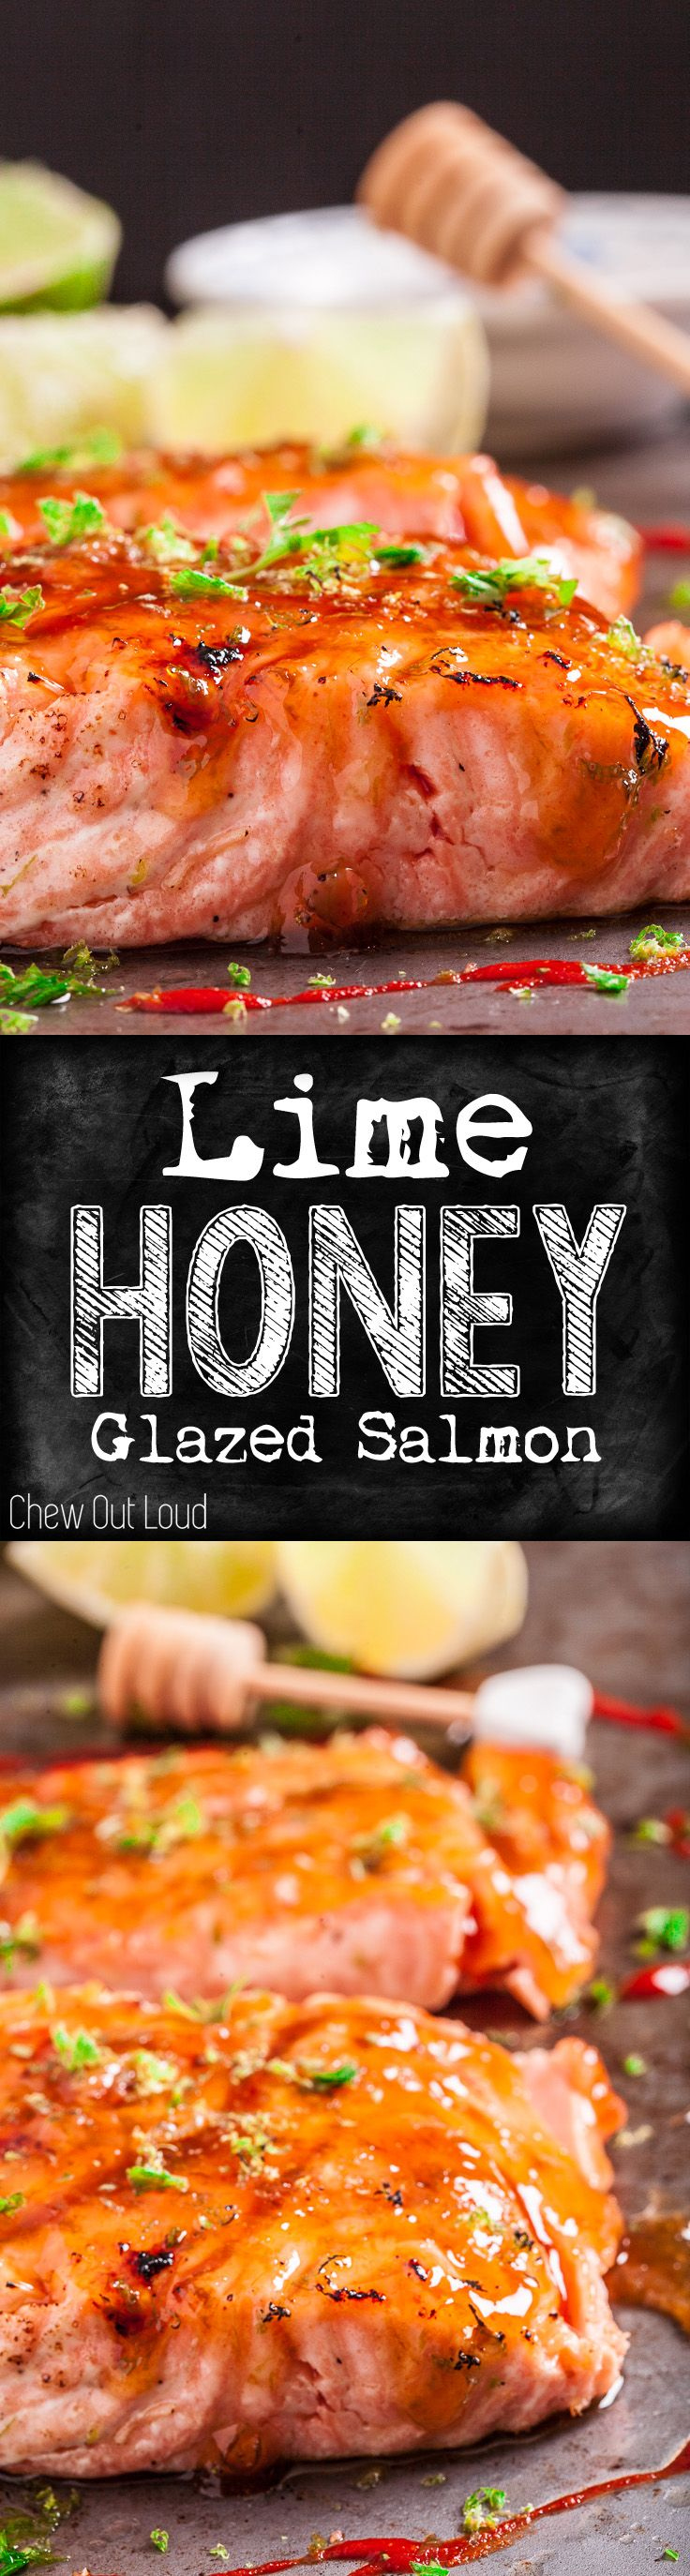 Easy, Healthy, So Flavorful! Great for grilling season or any time of year. #salmon #recipe #seafood